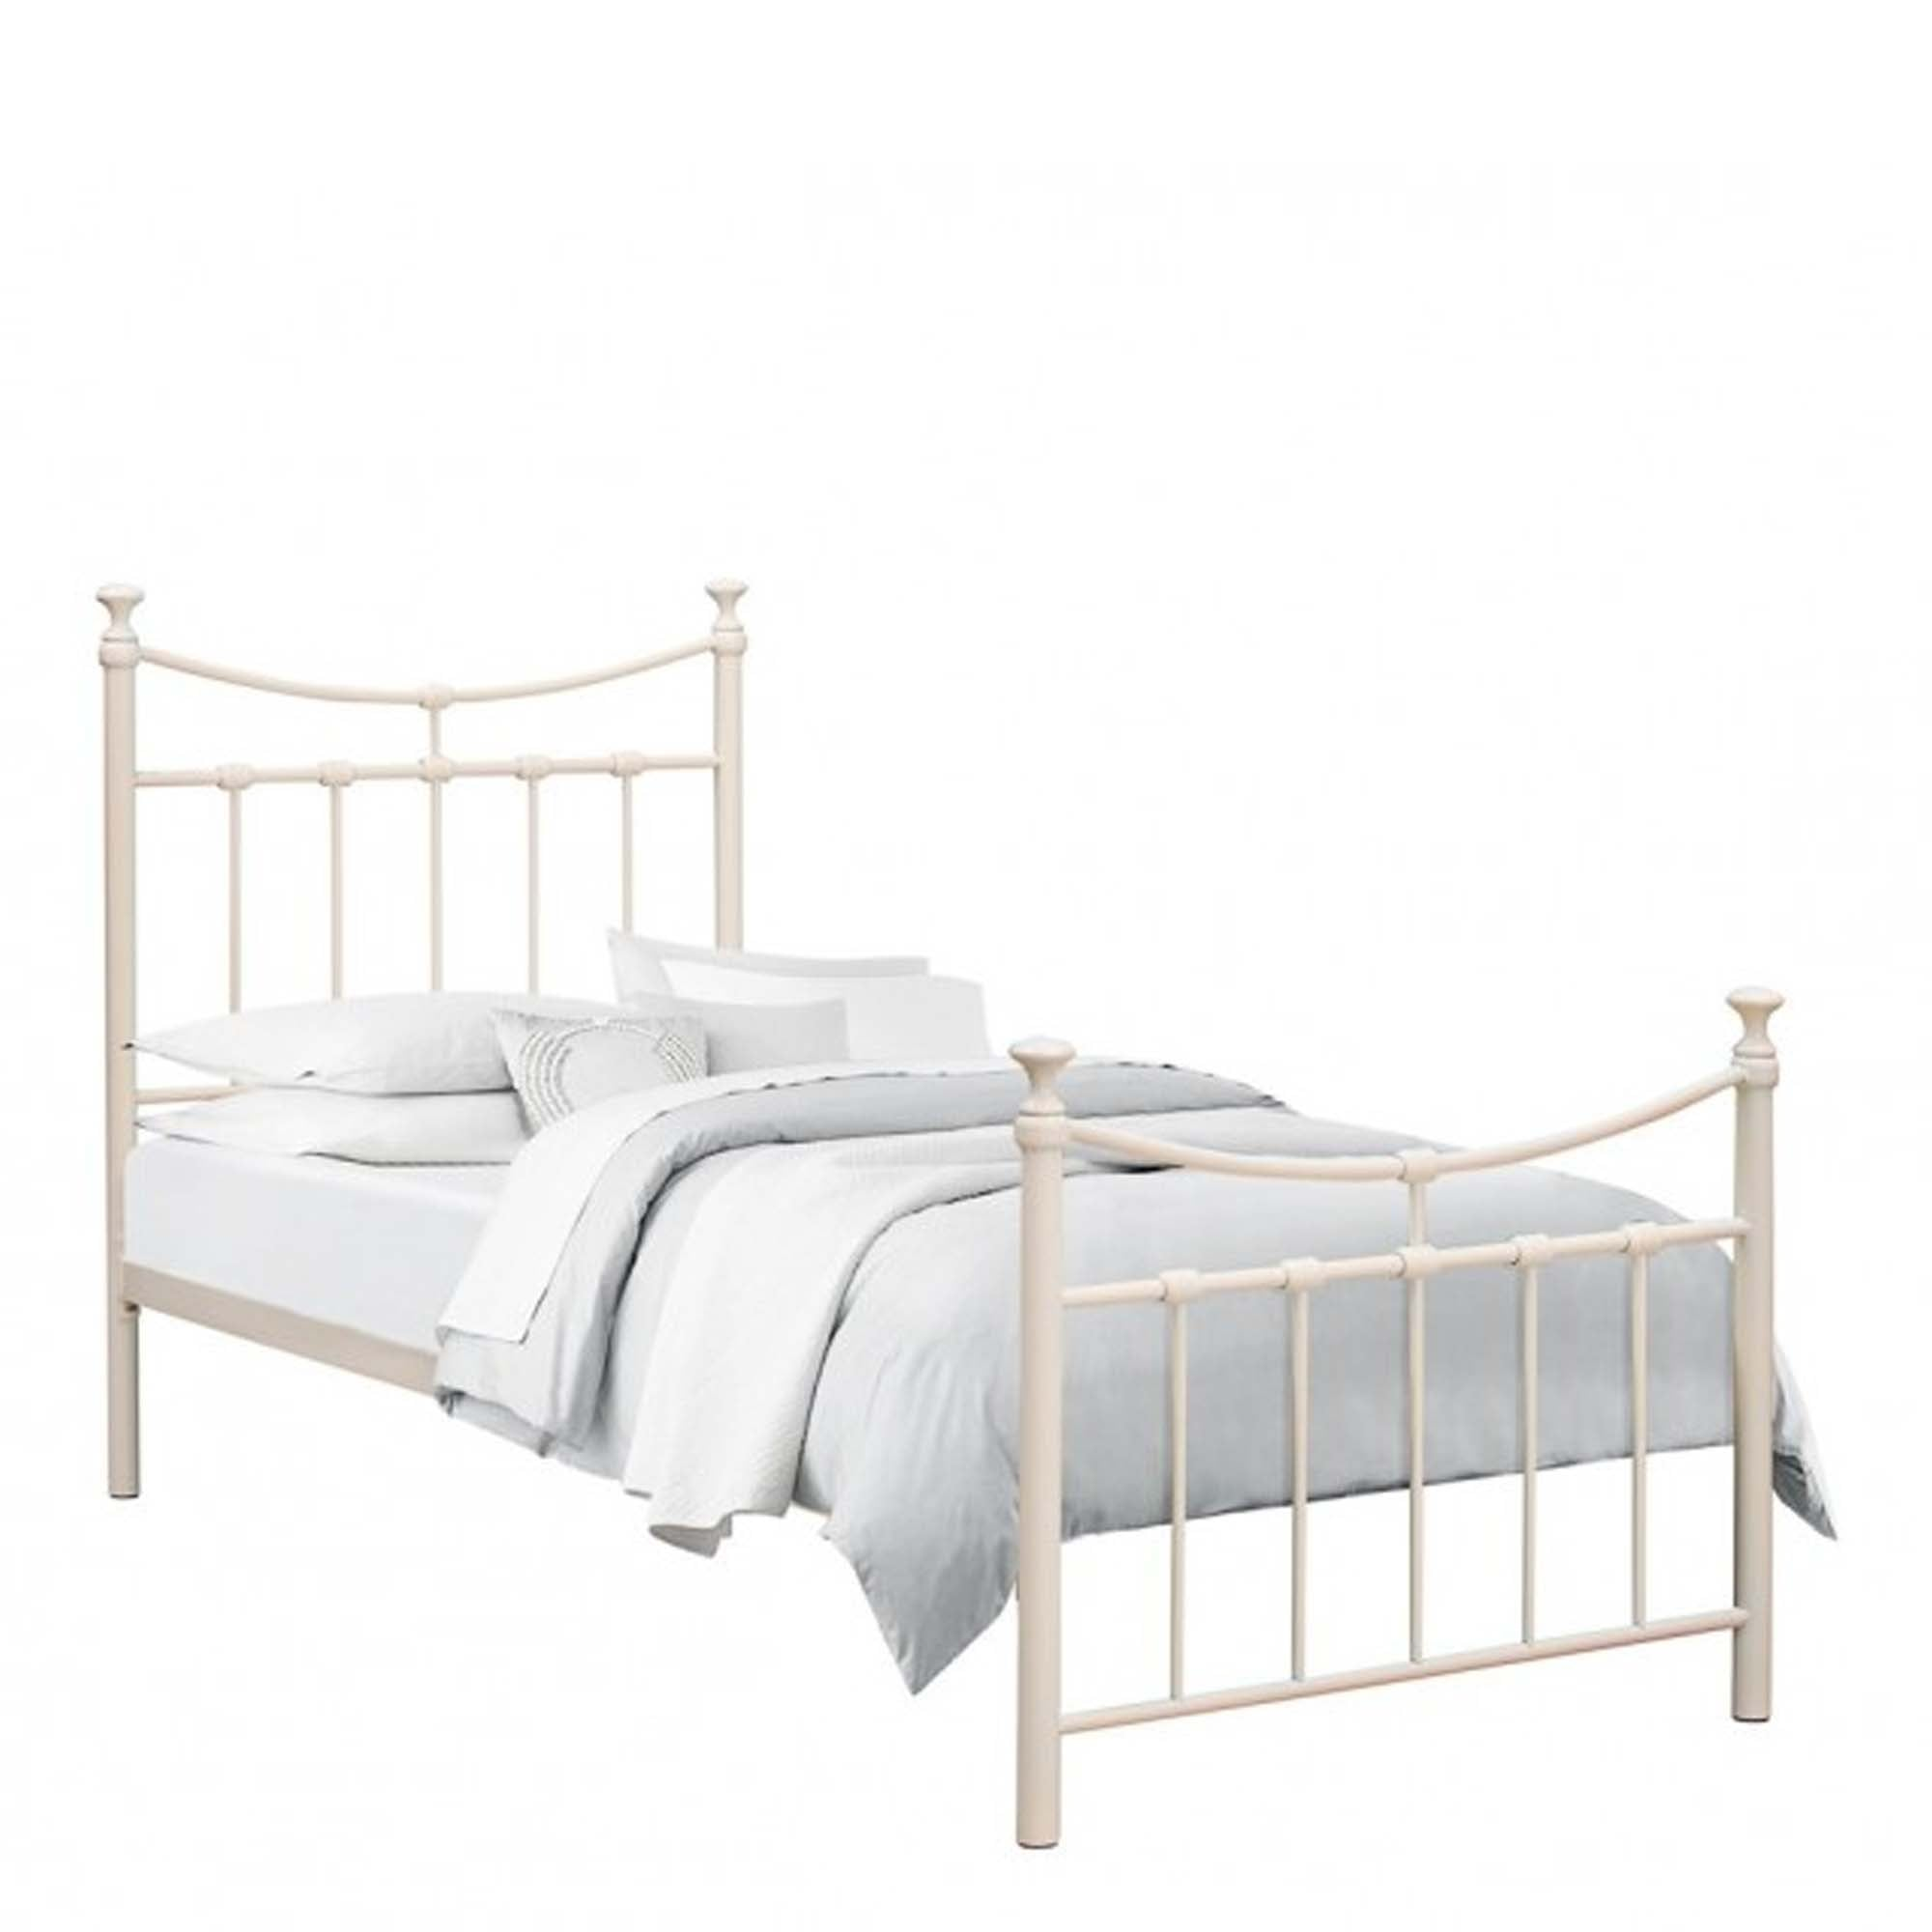 Emily Single 3 0 Metal Bed Frame In Cream Furniture From Delta House And Home Uk